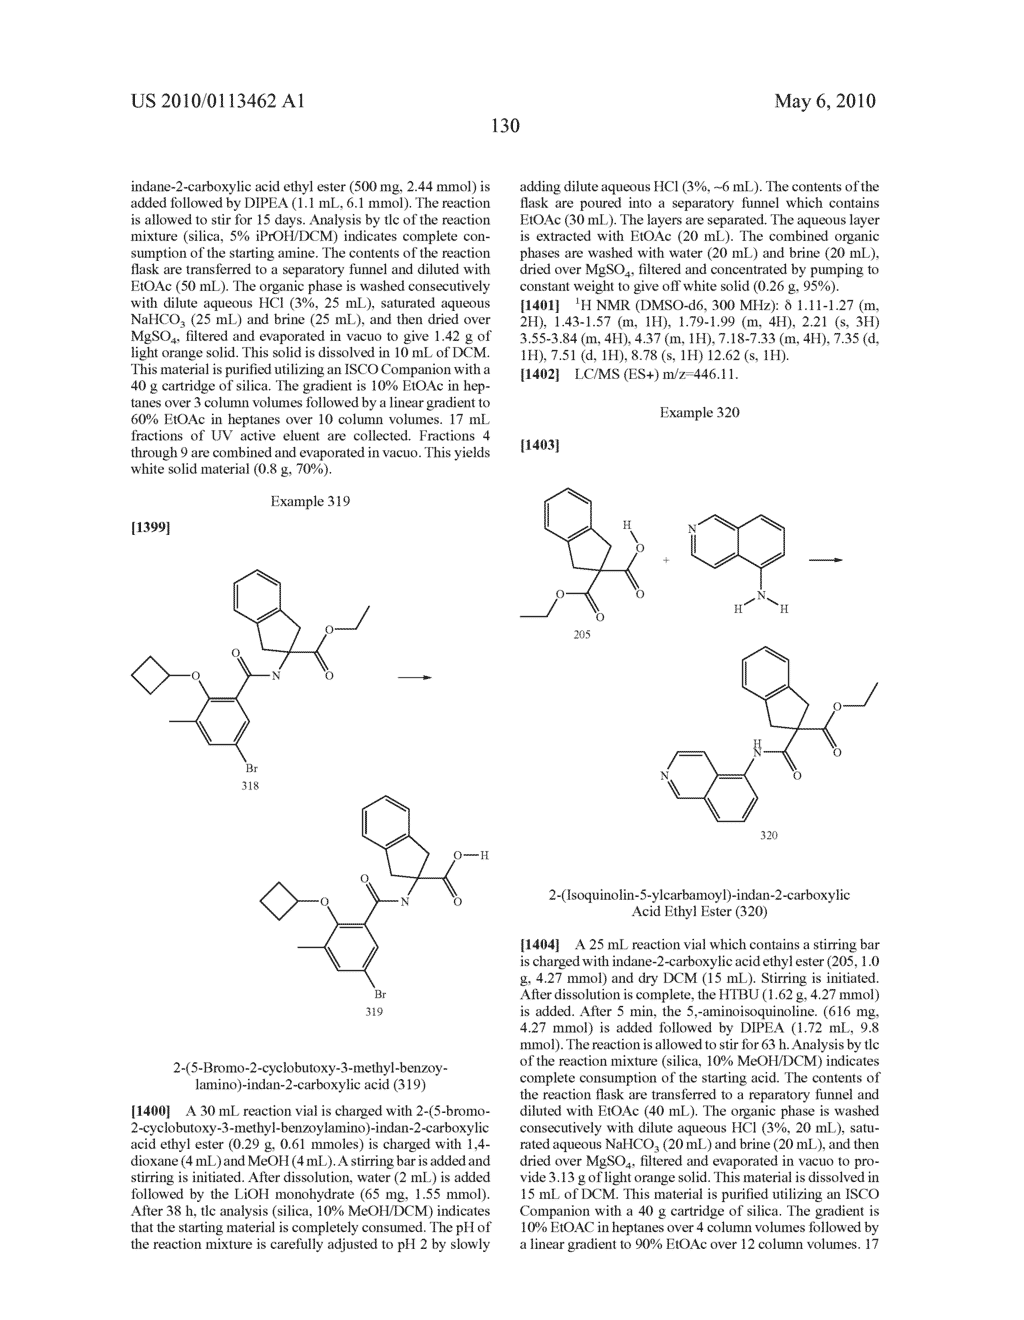 SUBSTITUTED BENZOYLAMINO-INDAN-2-CARBOXYLIC ACIDS AND RELATED COMPOUNDS - diagram, schematic, and image 131